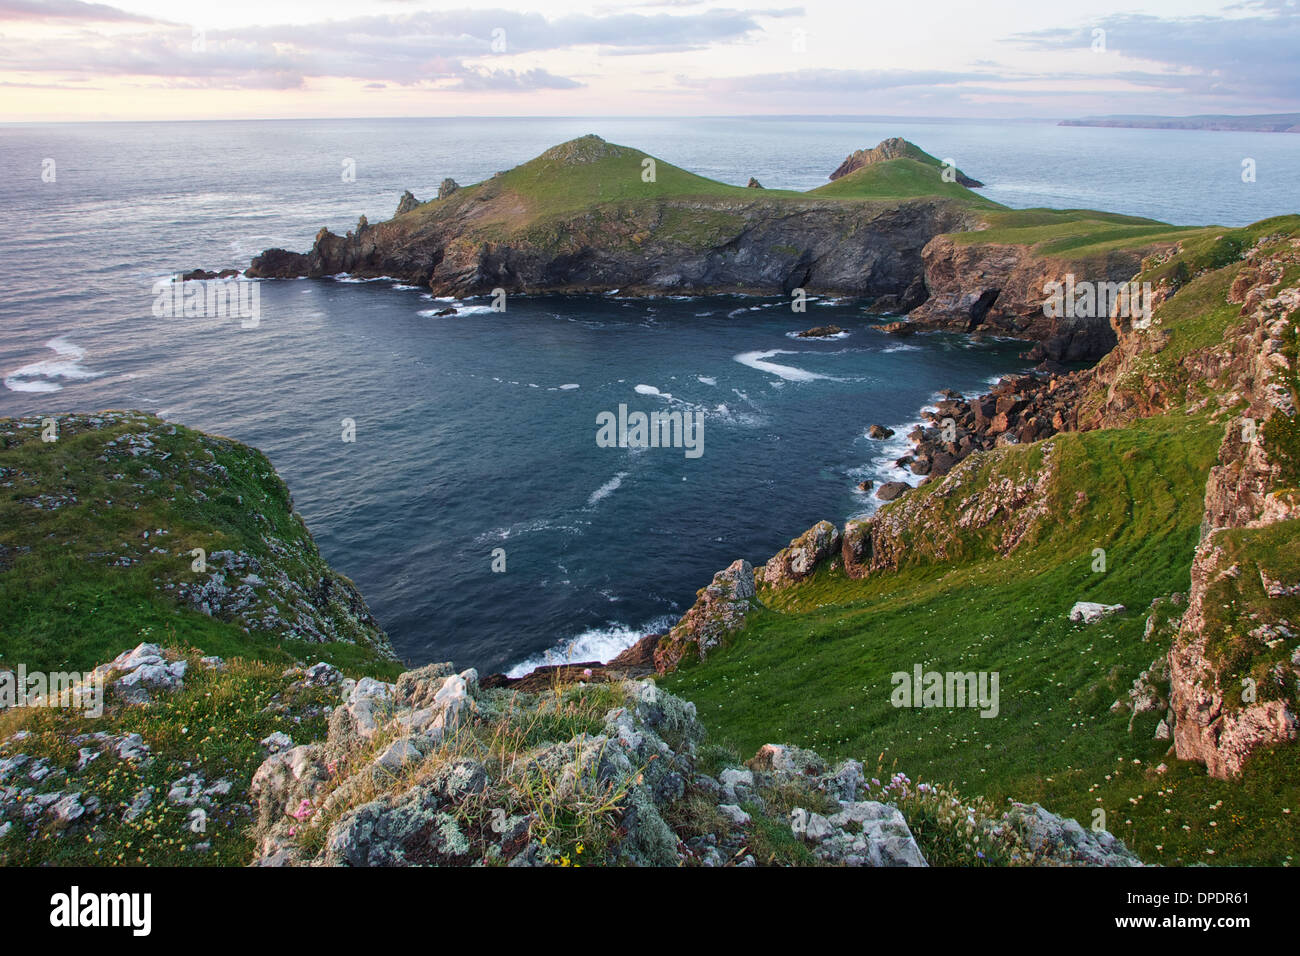 Sunset at The Rumps, North Cornwall - Stock Image